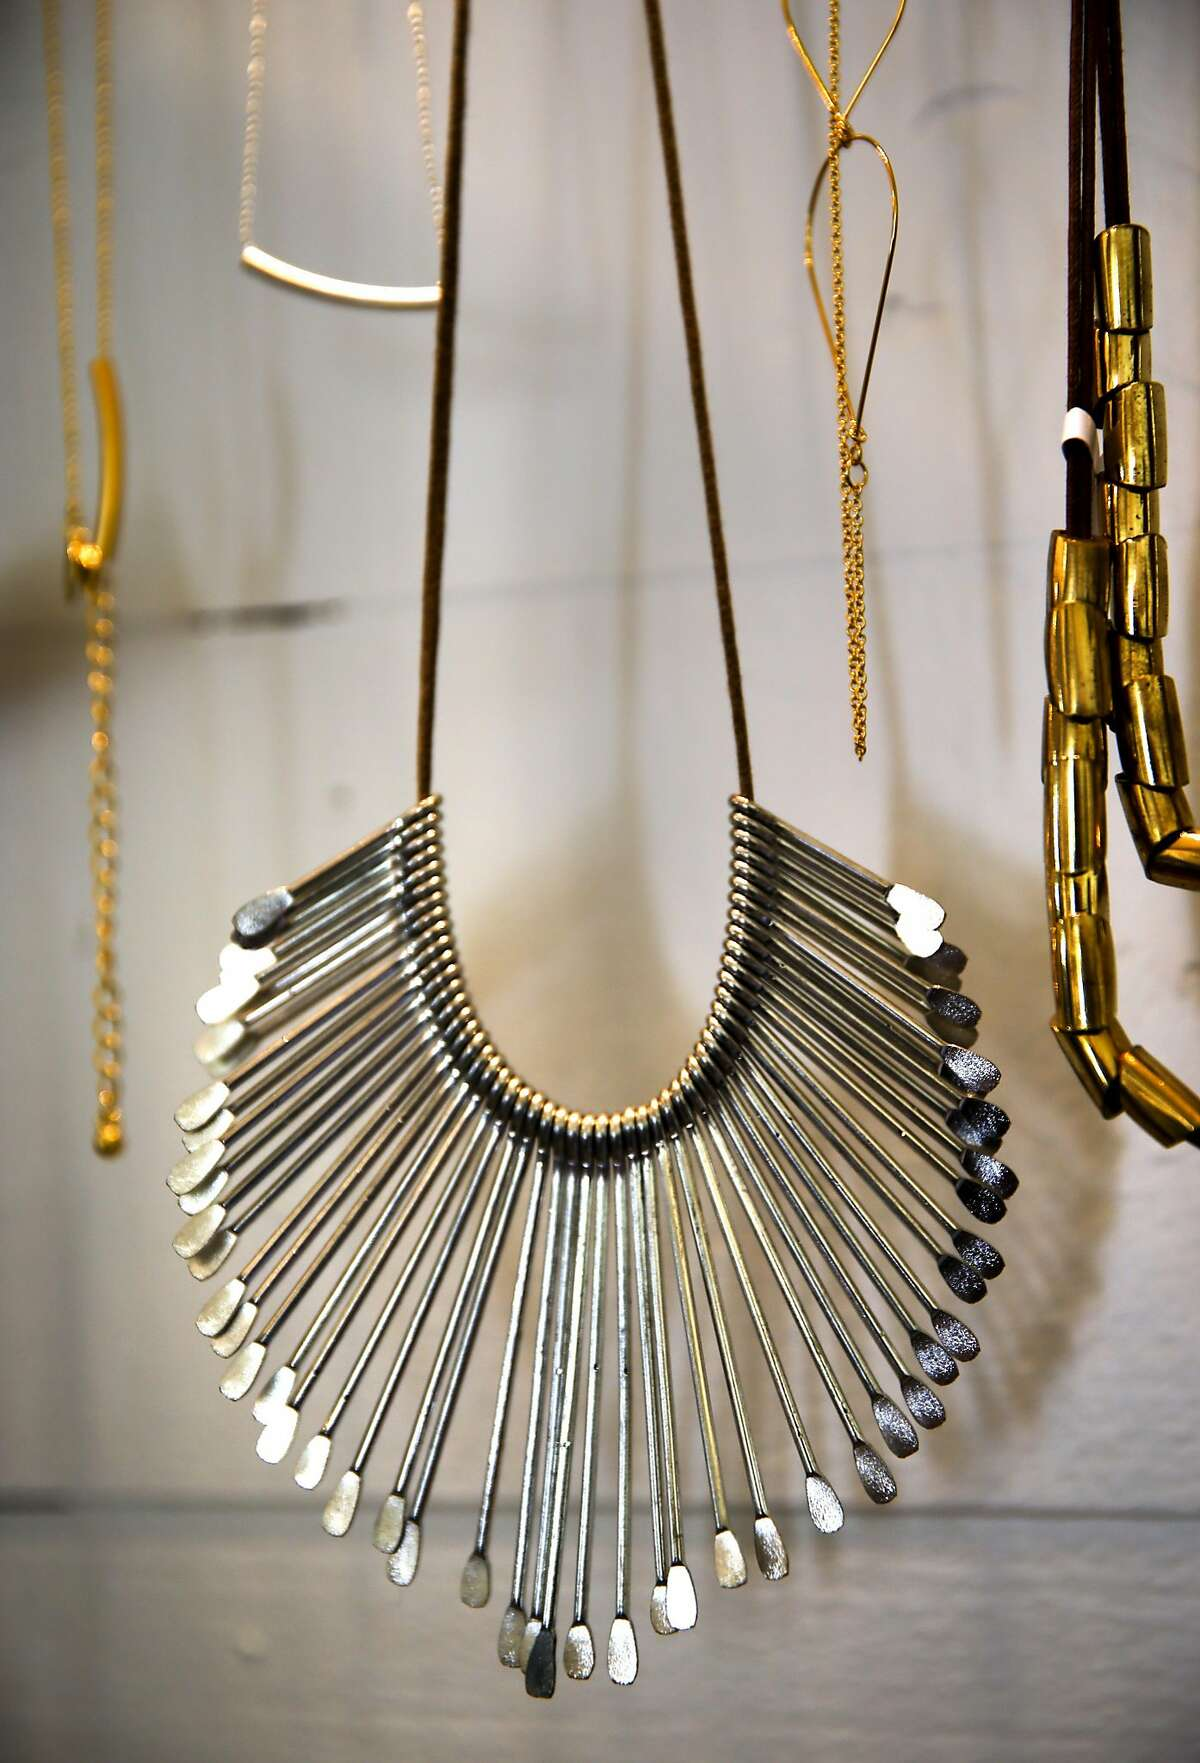 Amano Studio Jewelry of Sonoma is displayed at The Shop in Olema, California, on Sat. March 26, 2016.